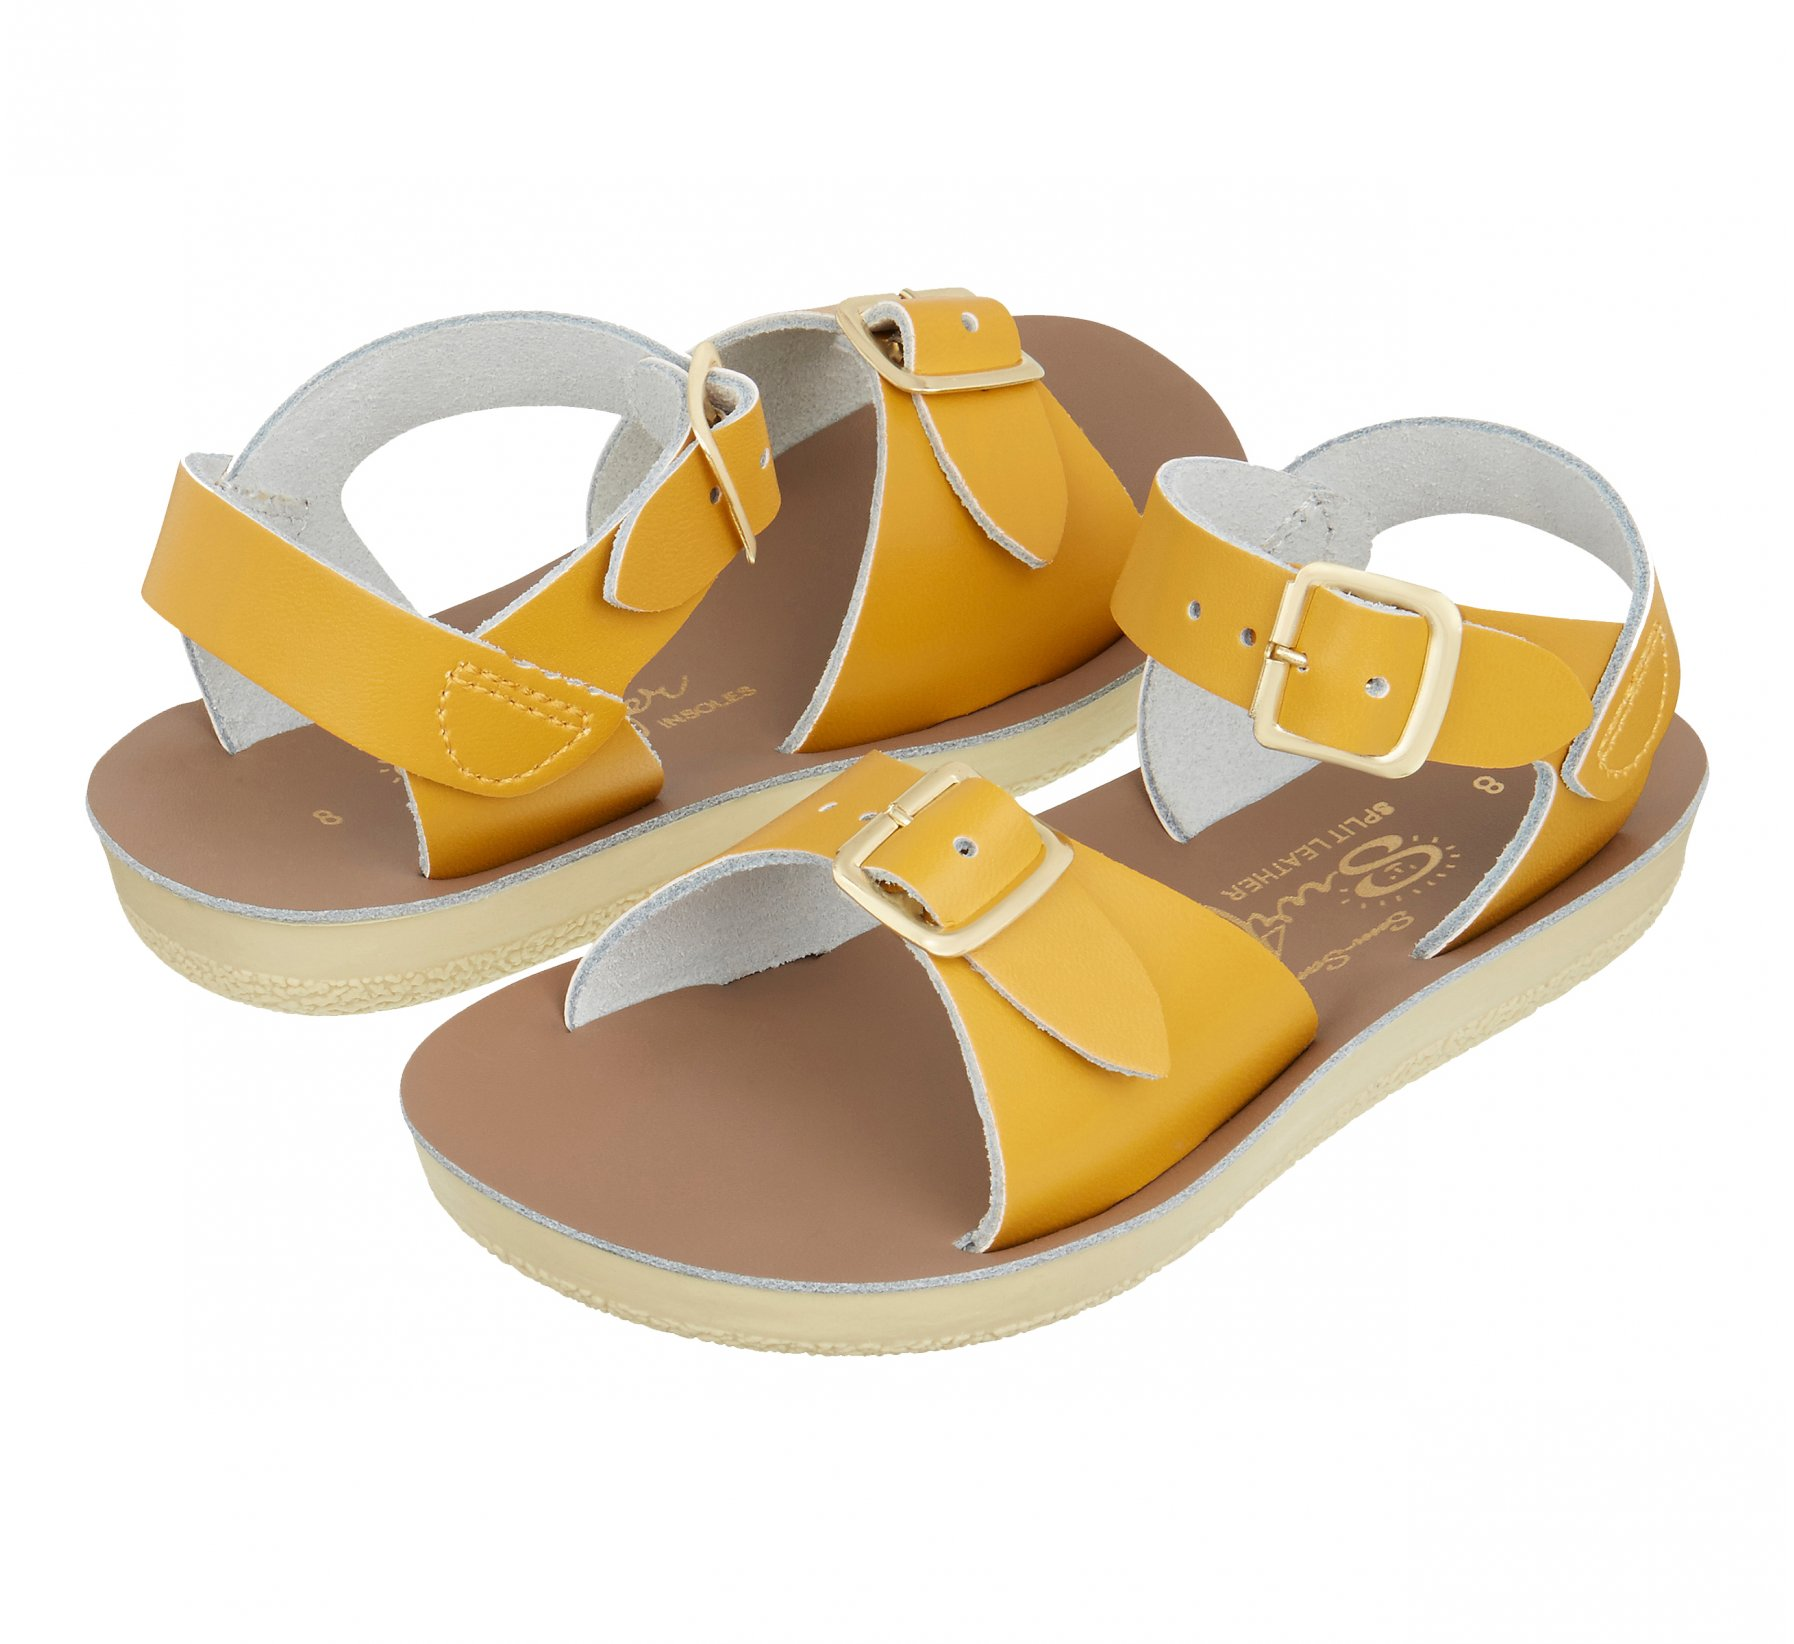 Surfer Mustard - Salt Water Sandals